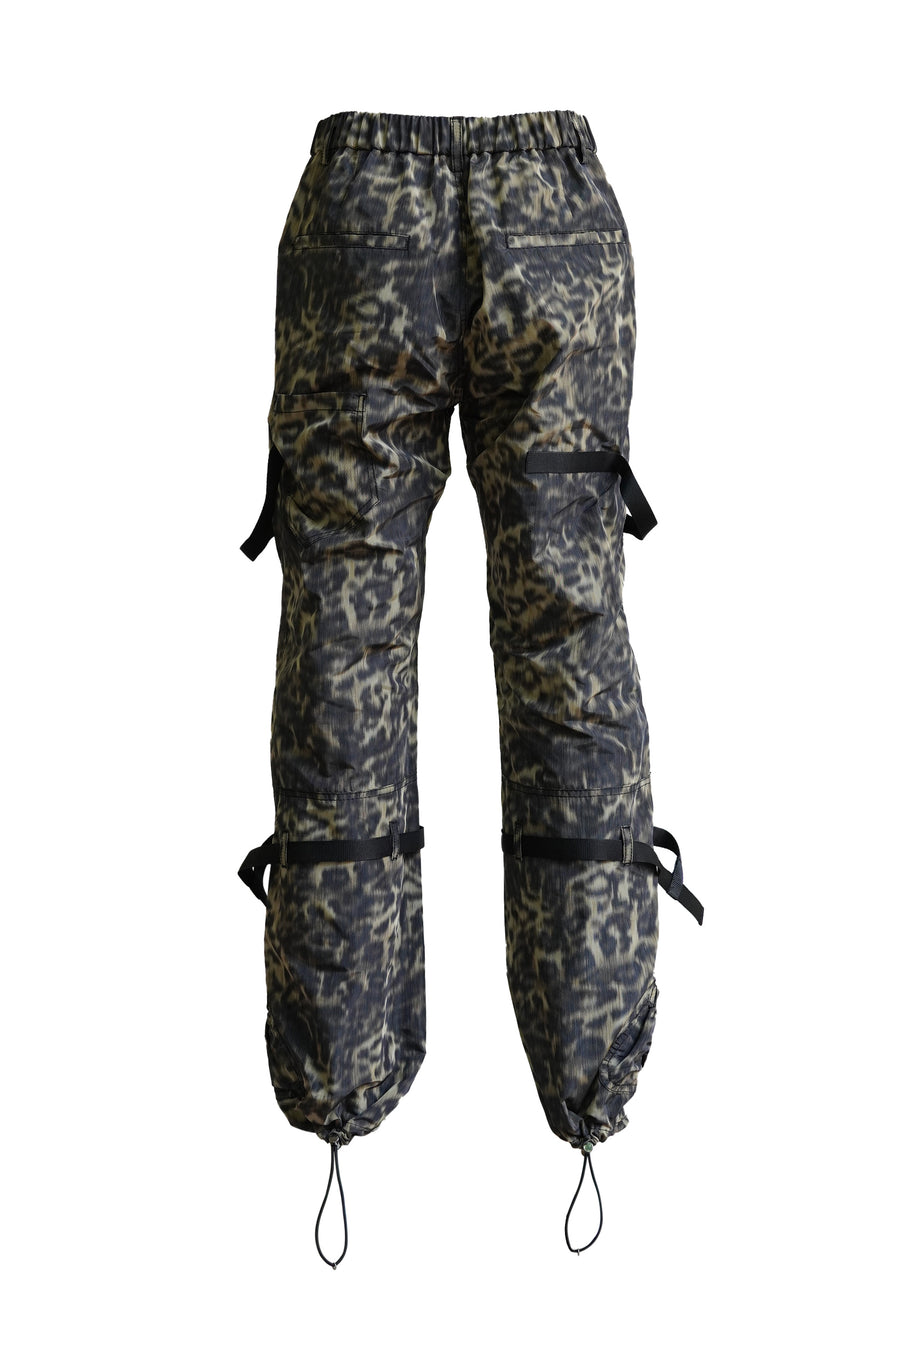 Leopard Print Camo Pant with Ties